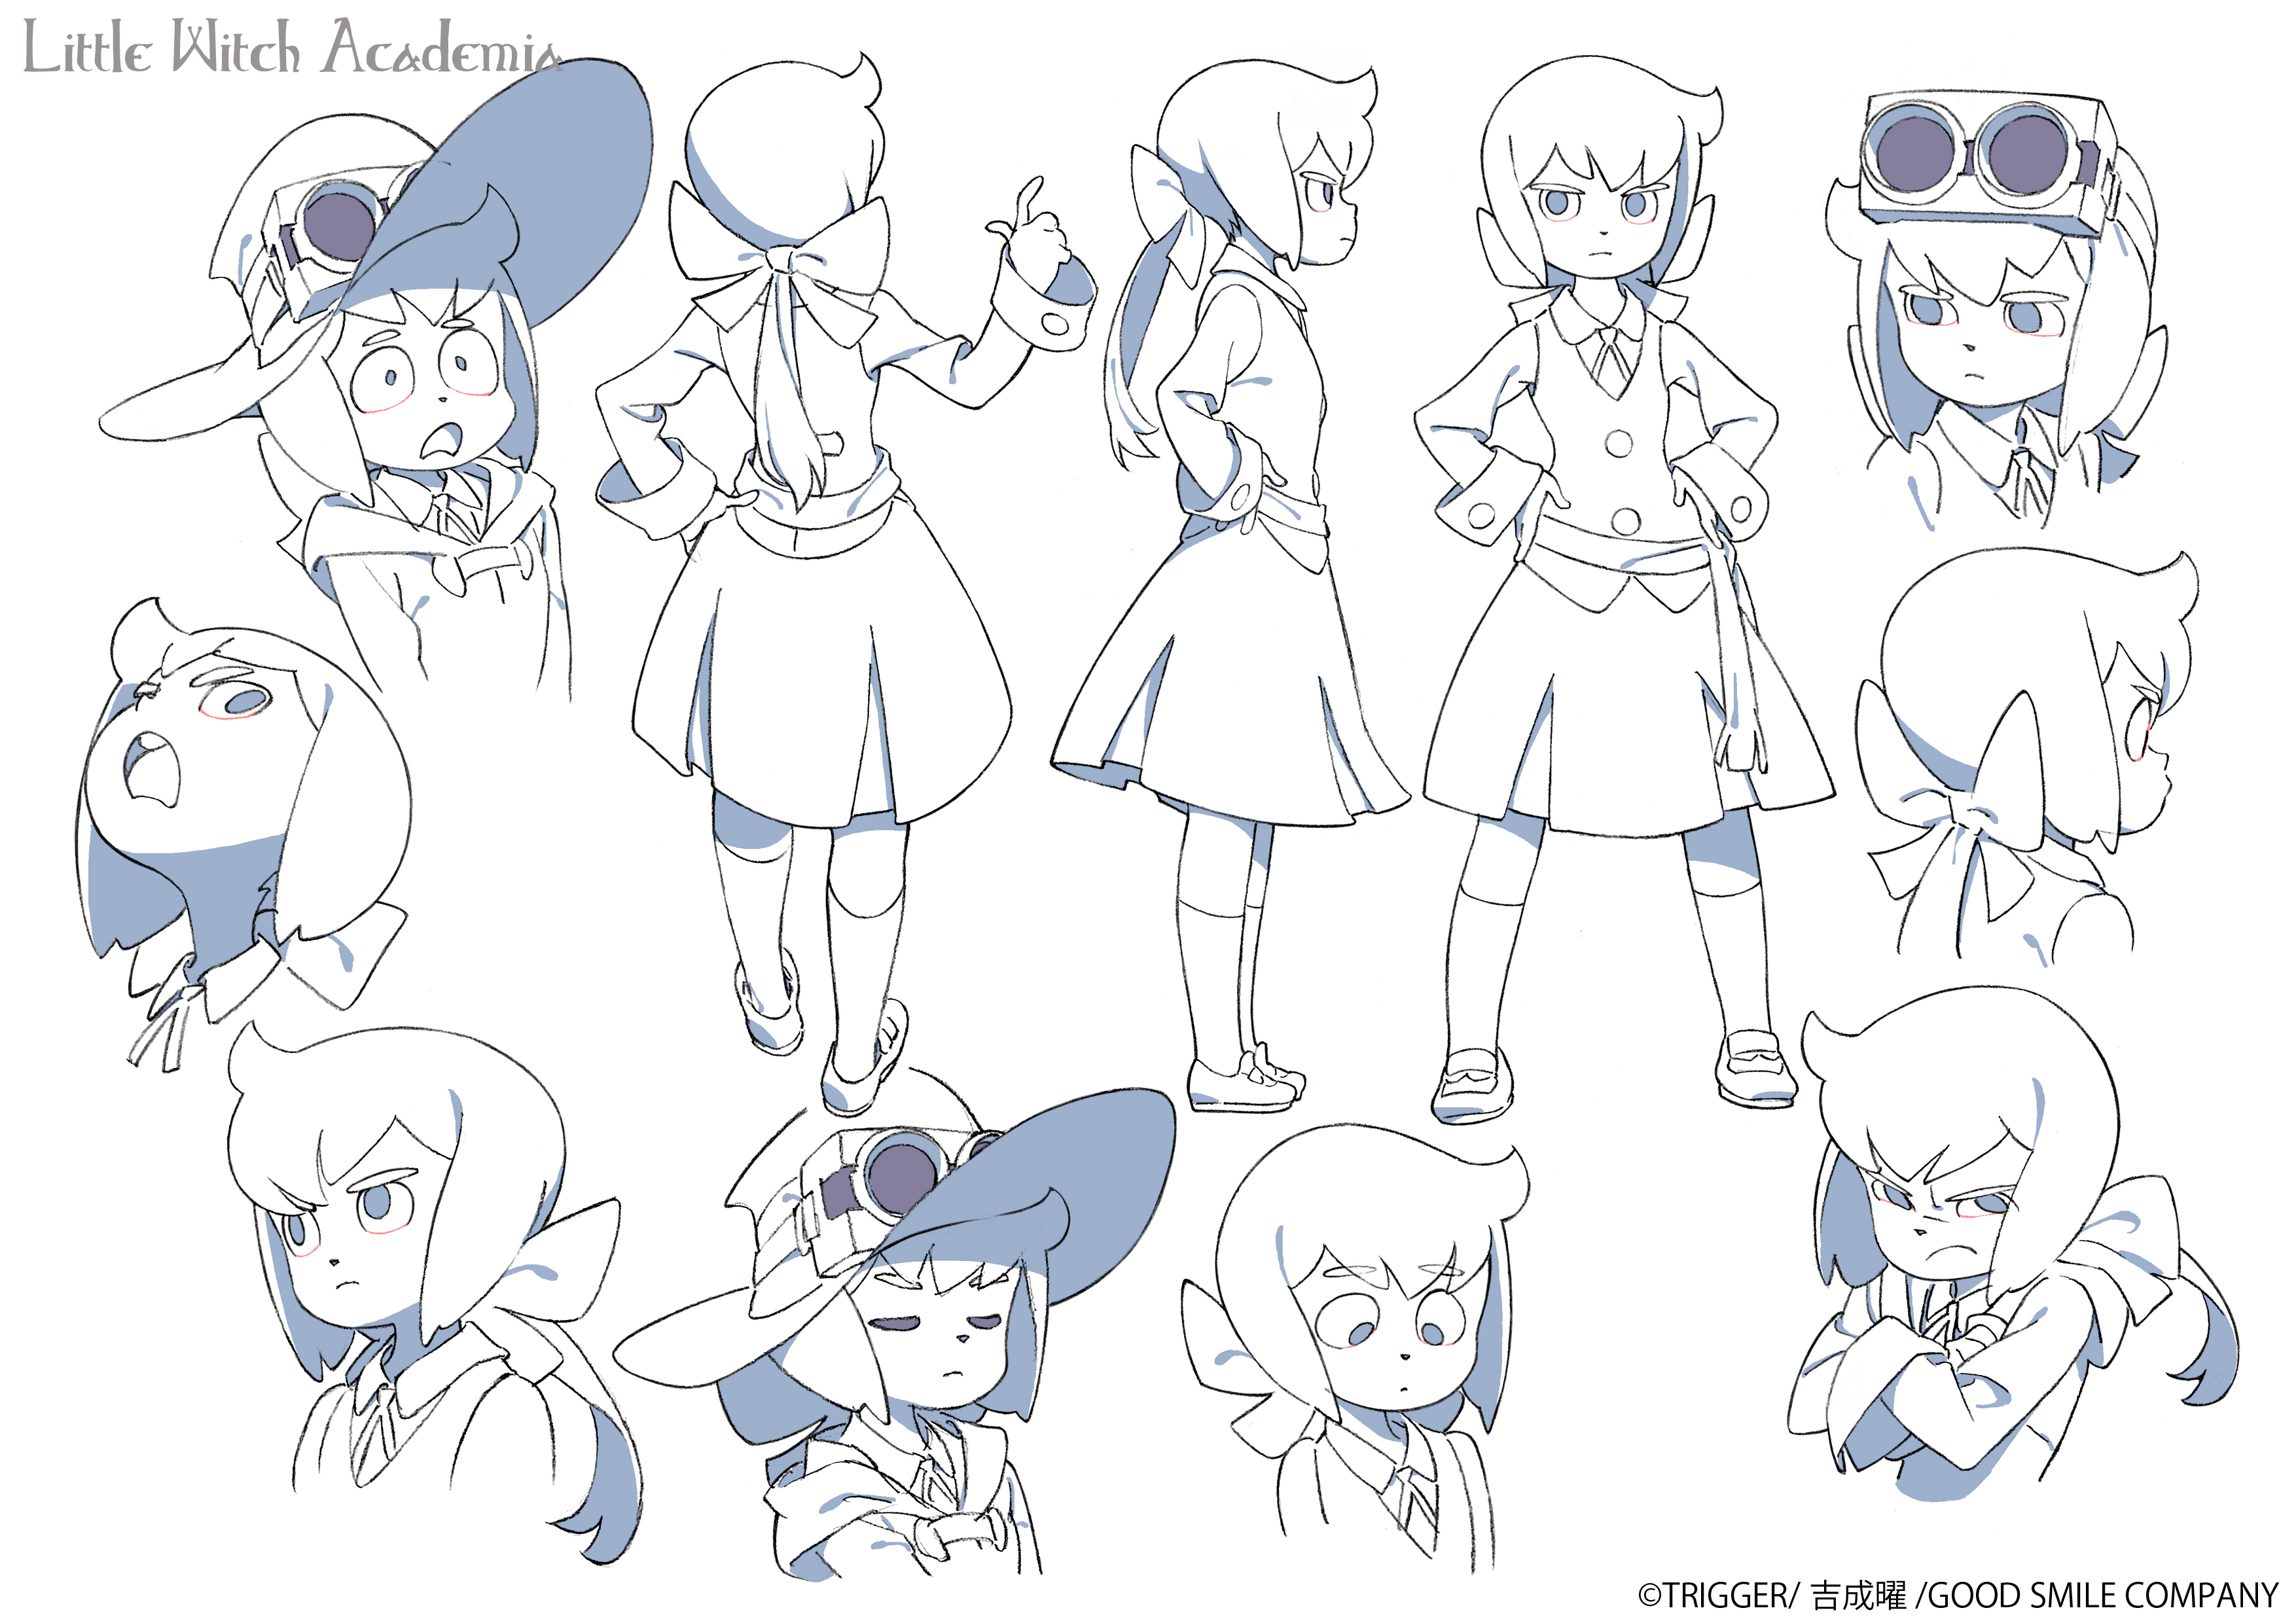 Top 10 Character Design Books : Images about little witch academia リトルウィッチアカデミア on